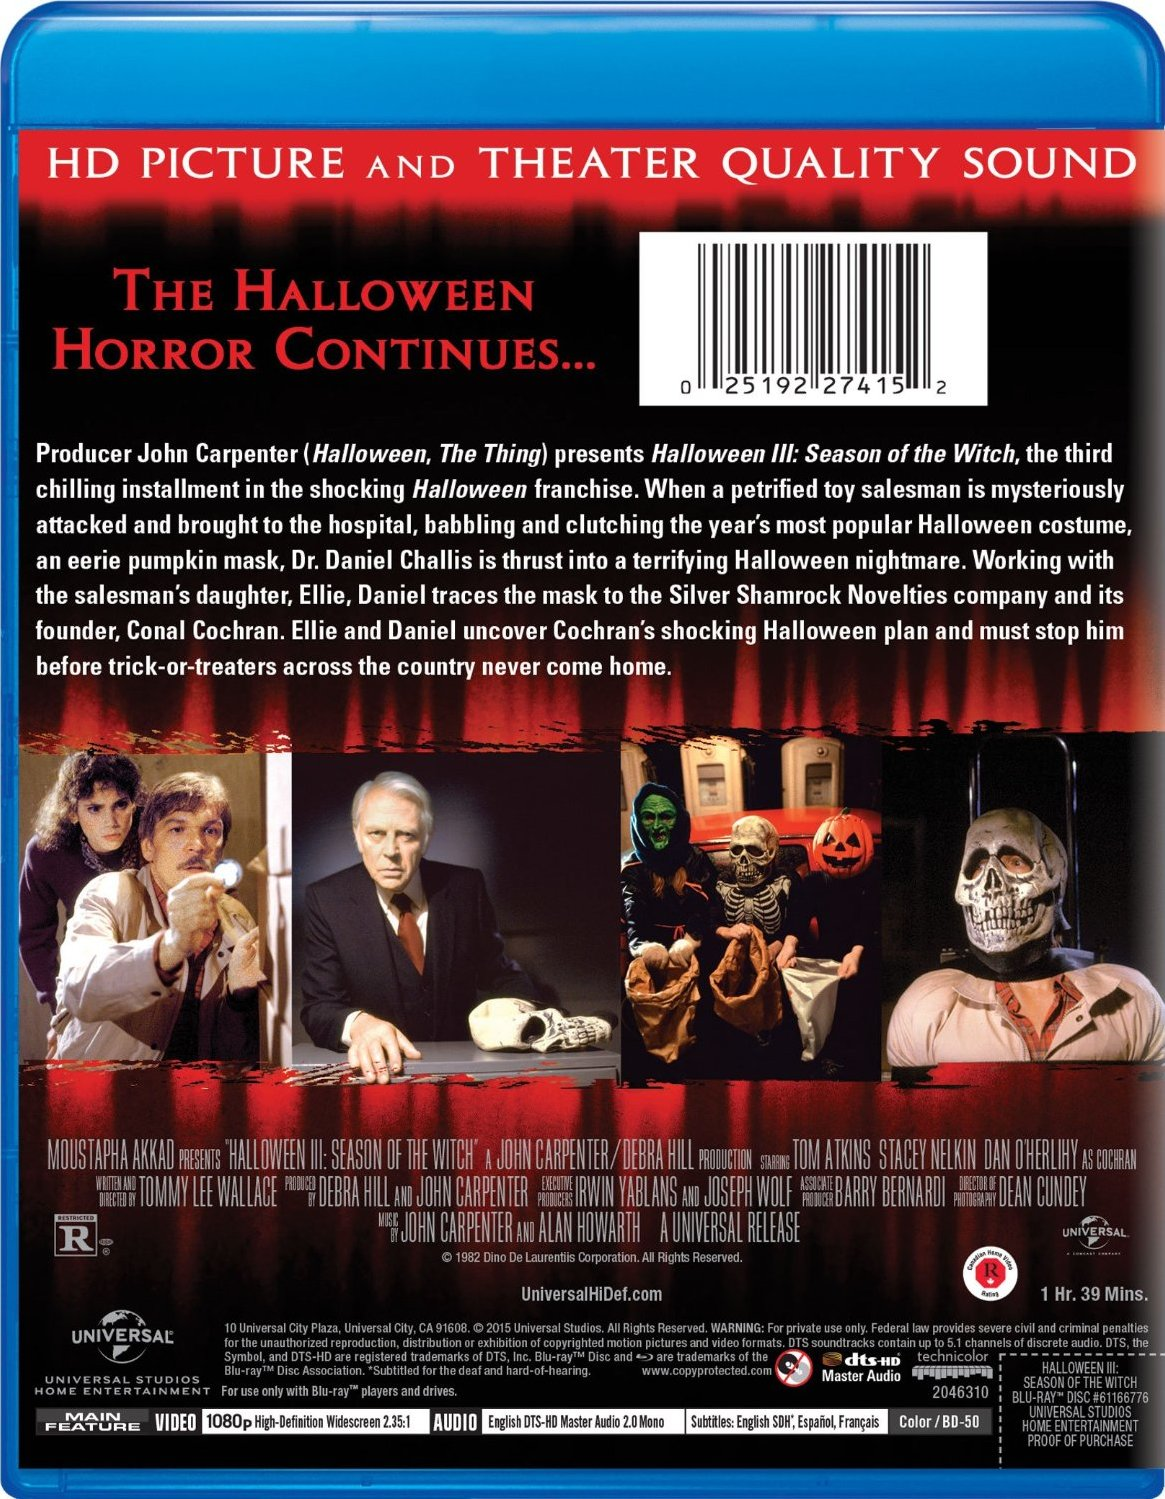 halloween: the complete collection (1978-2009) - page 1011 - blu-ray